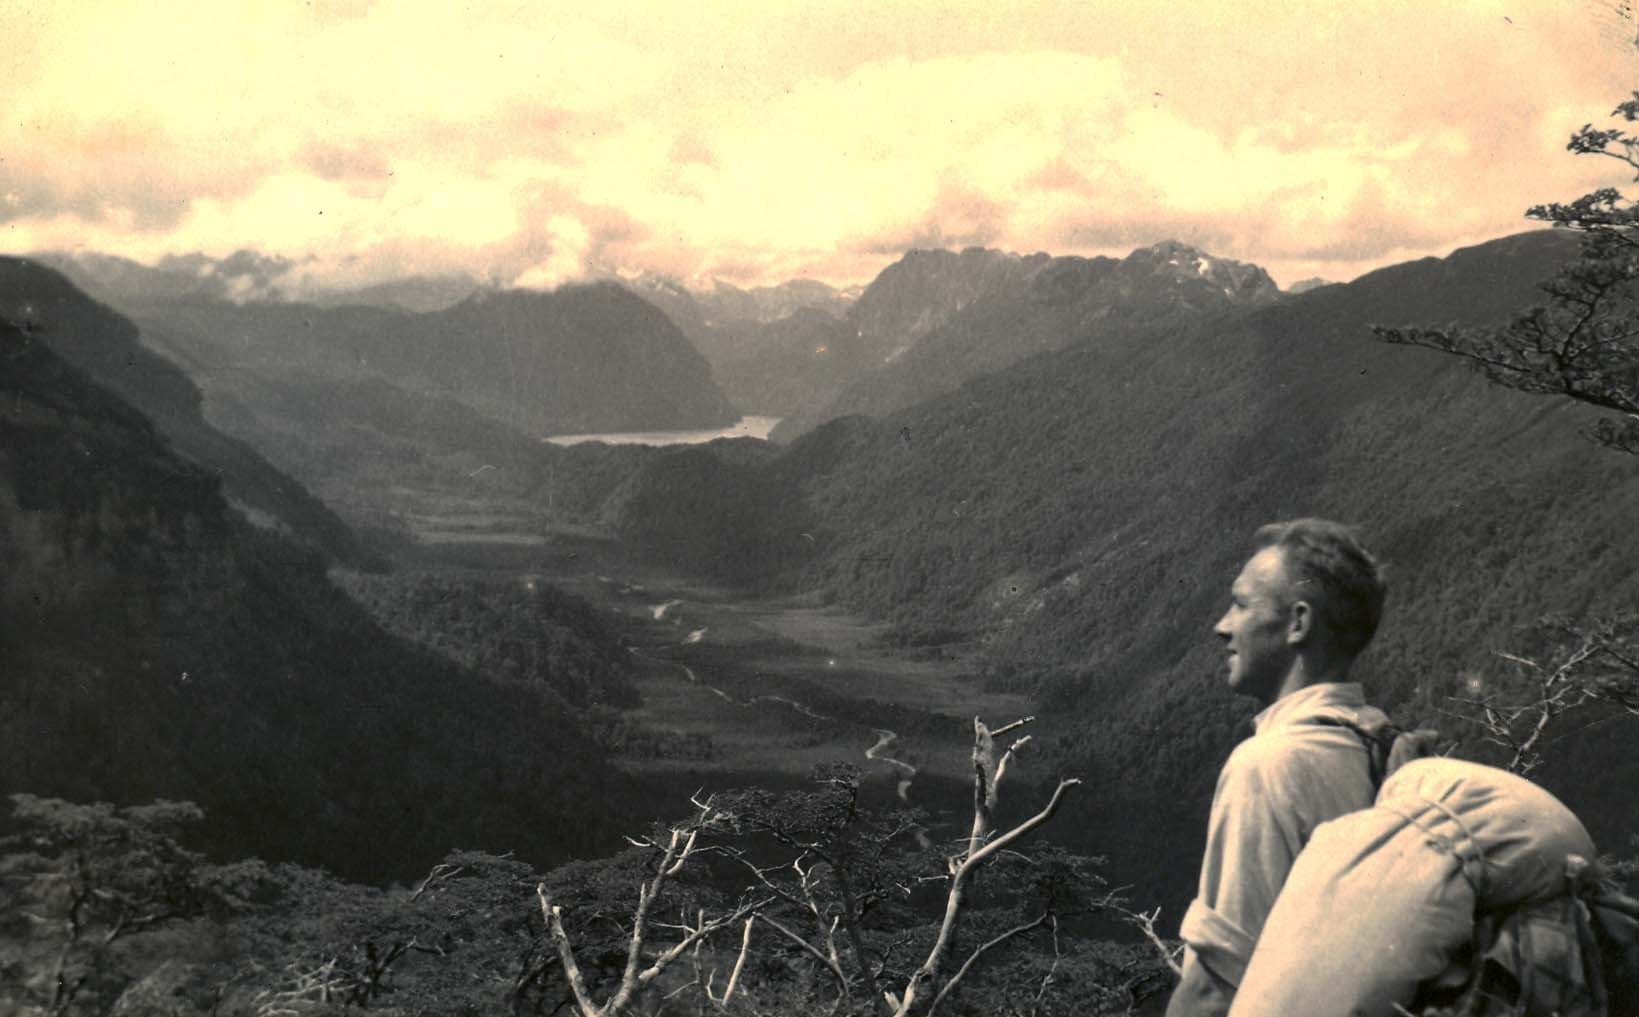 Dad as a young man in Patagonia